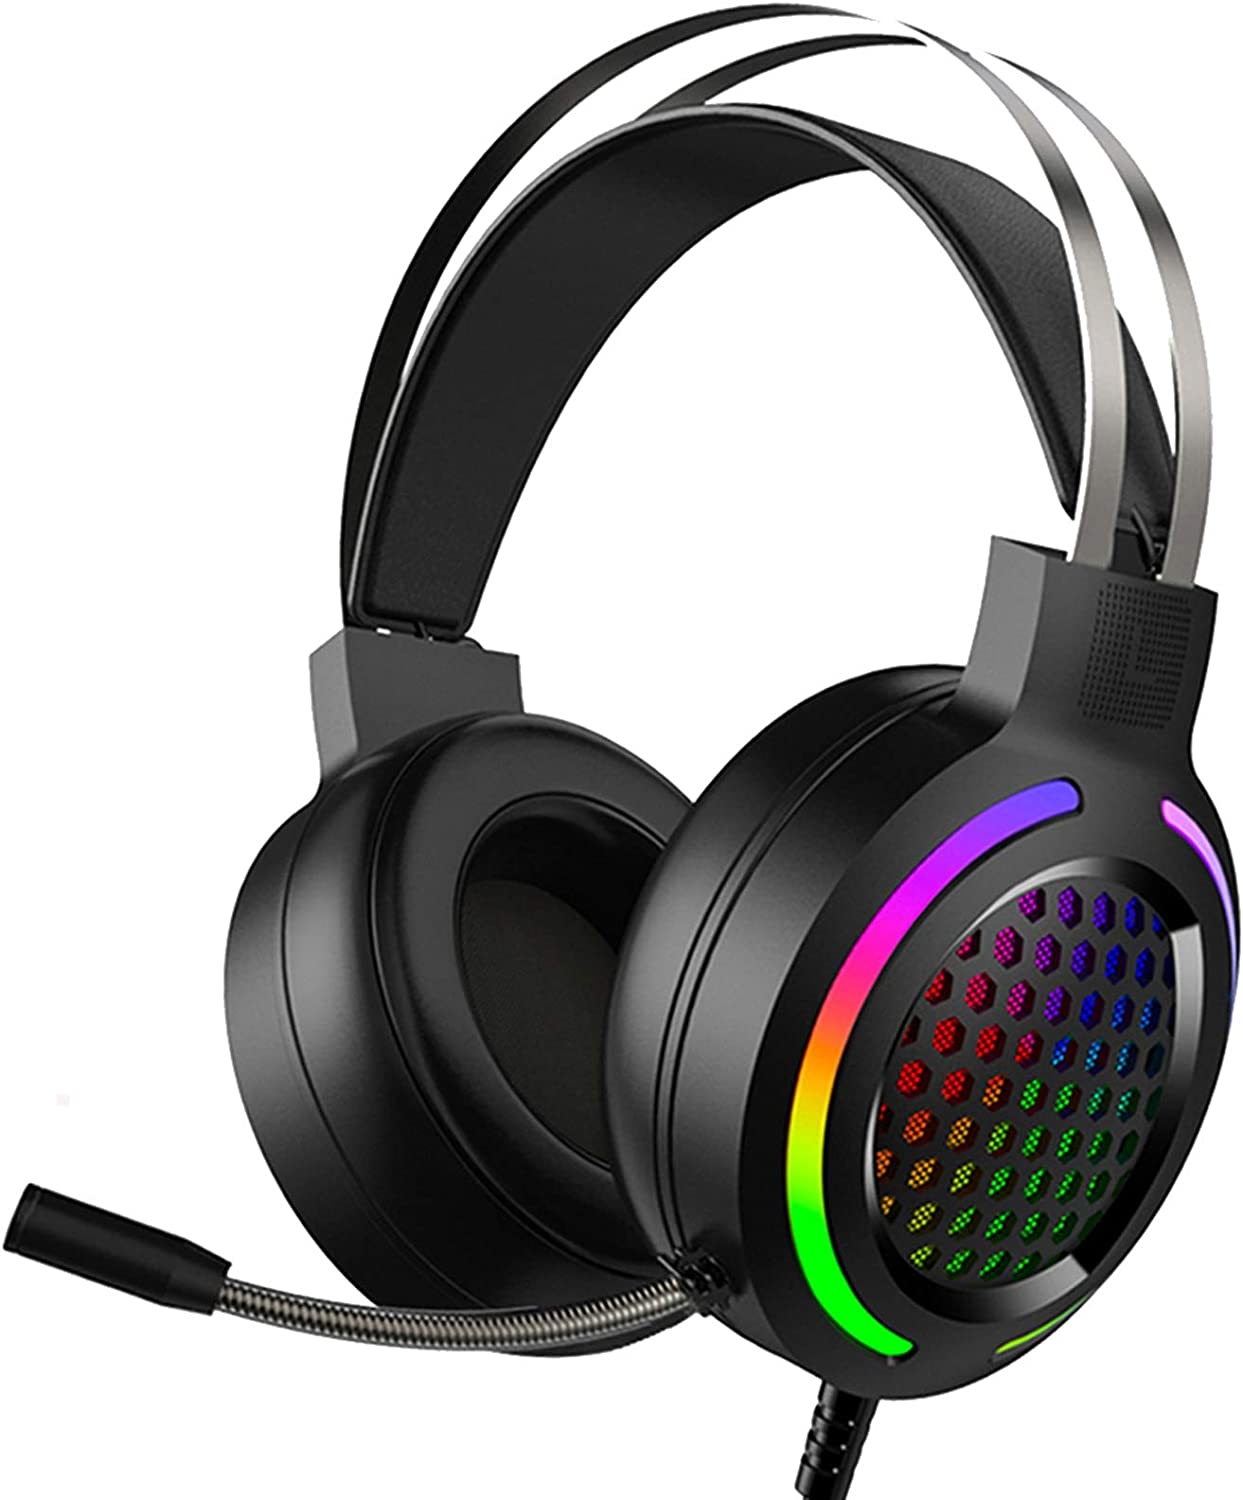 Gaming Headset with 7.1 Surround Sound,PC Headset with Noise Canceling Mic,Bass Surround,Soft Memory Earmuffs,Rainbow LED Backlit,Compatible with PC,PS4,Xbox One Controller(Adapter Not Included)